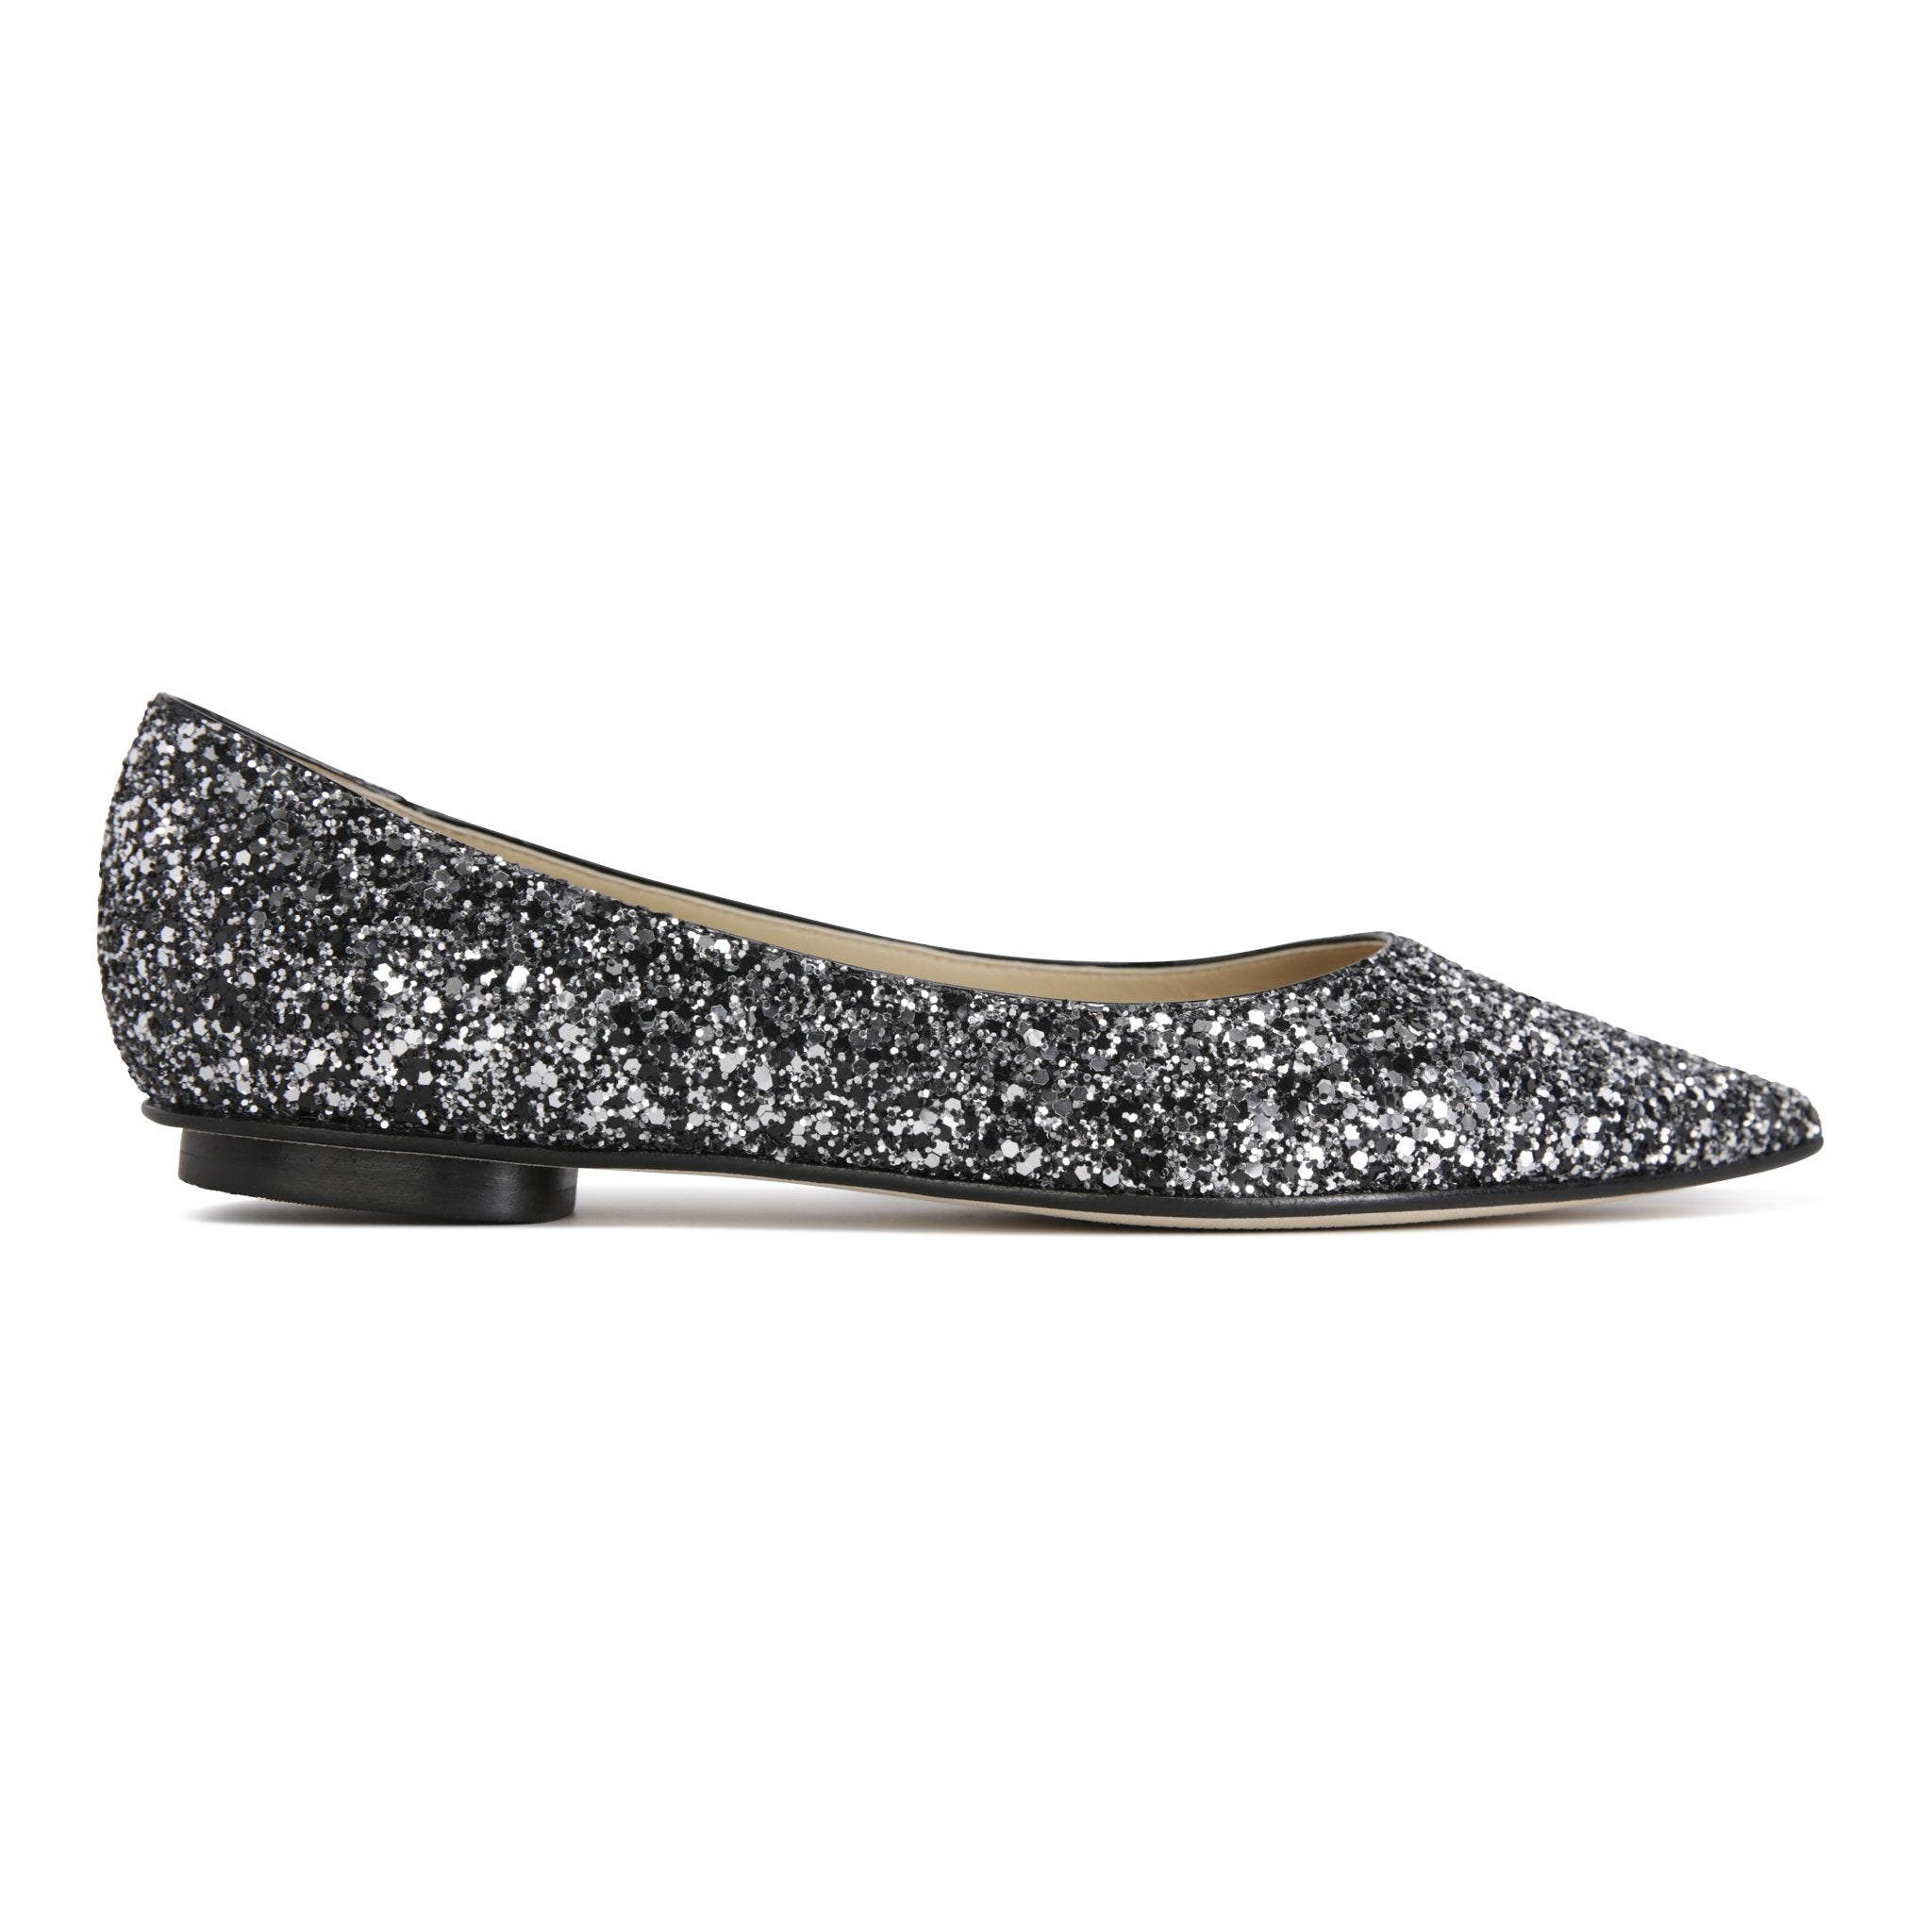 COMO - Glitter Notte, VIAJIYU - Women's Hand Made Sustainable Luxury Shoes. Made in Italy. Made to Order.